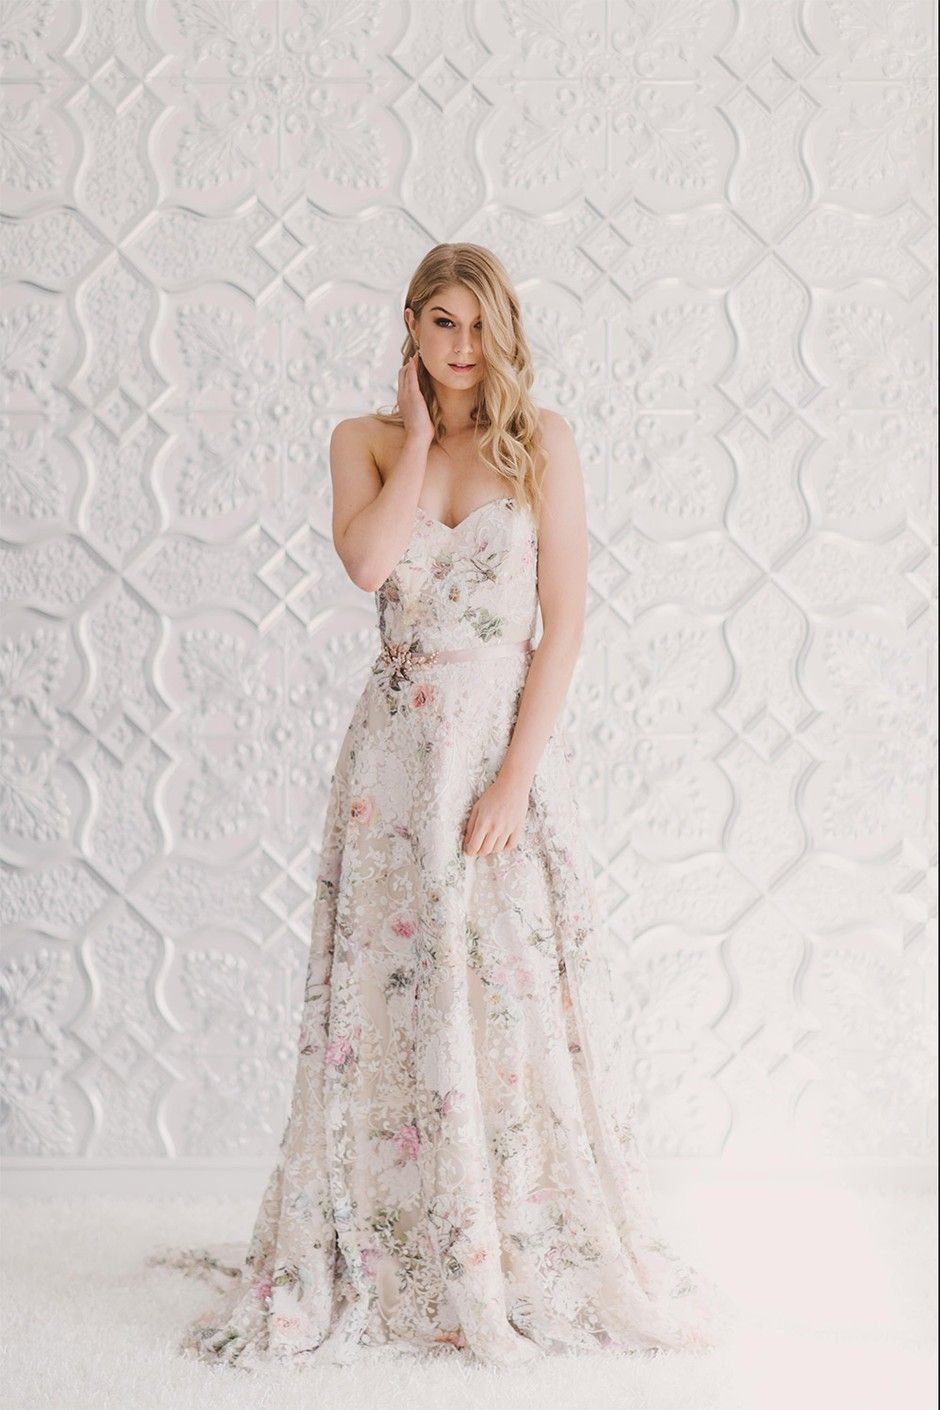 Alternative Wedding Dresses: The Best Statement Styles